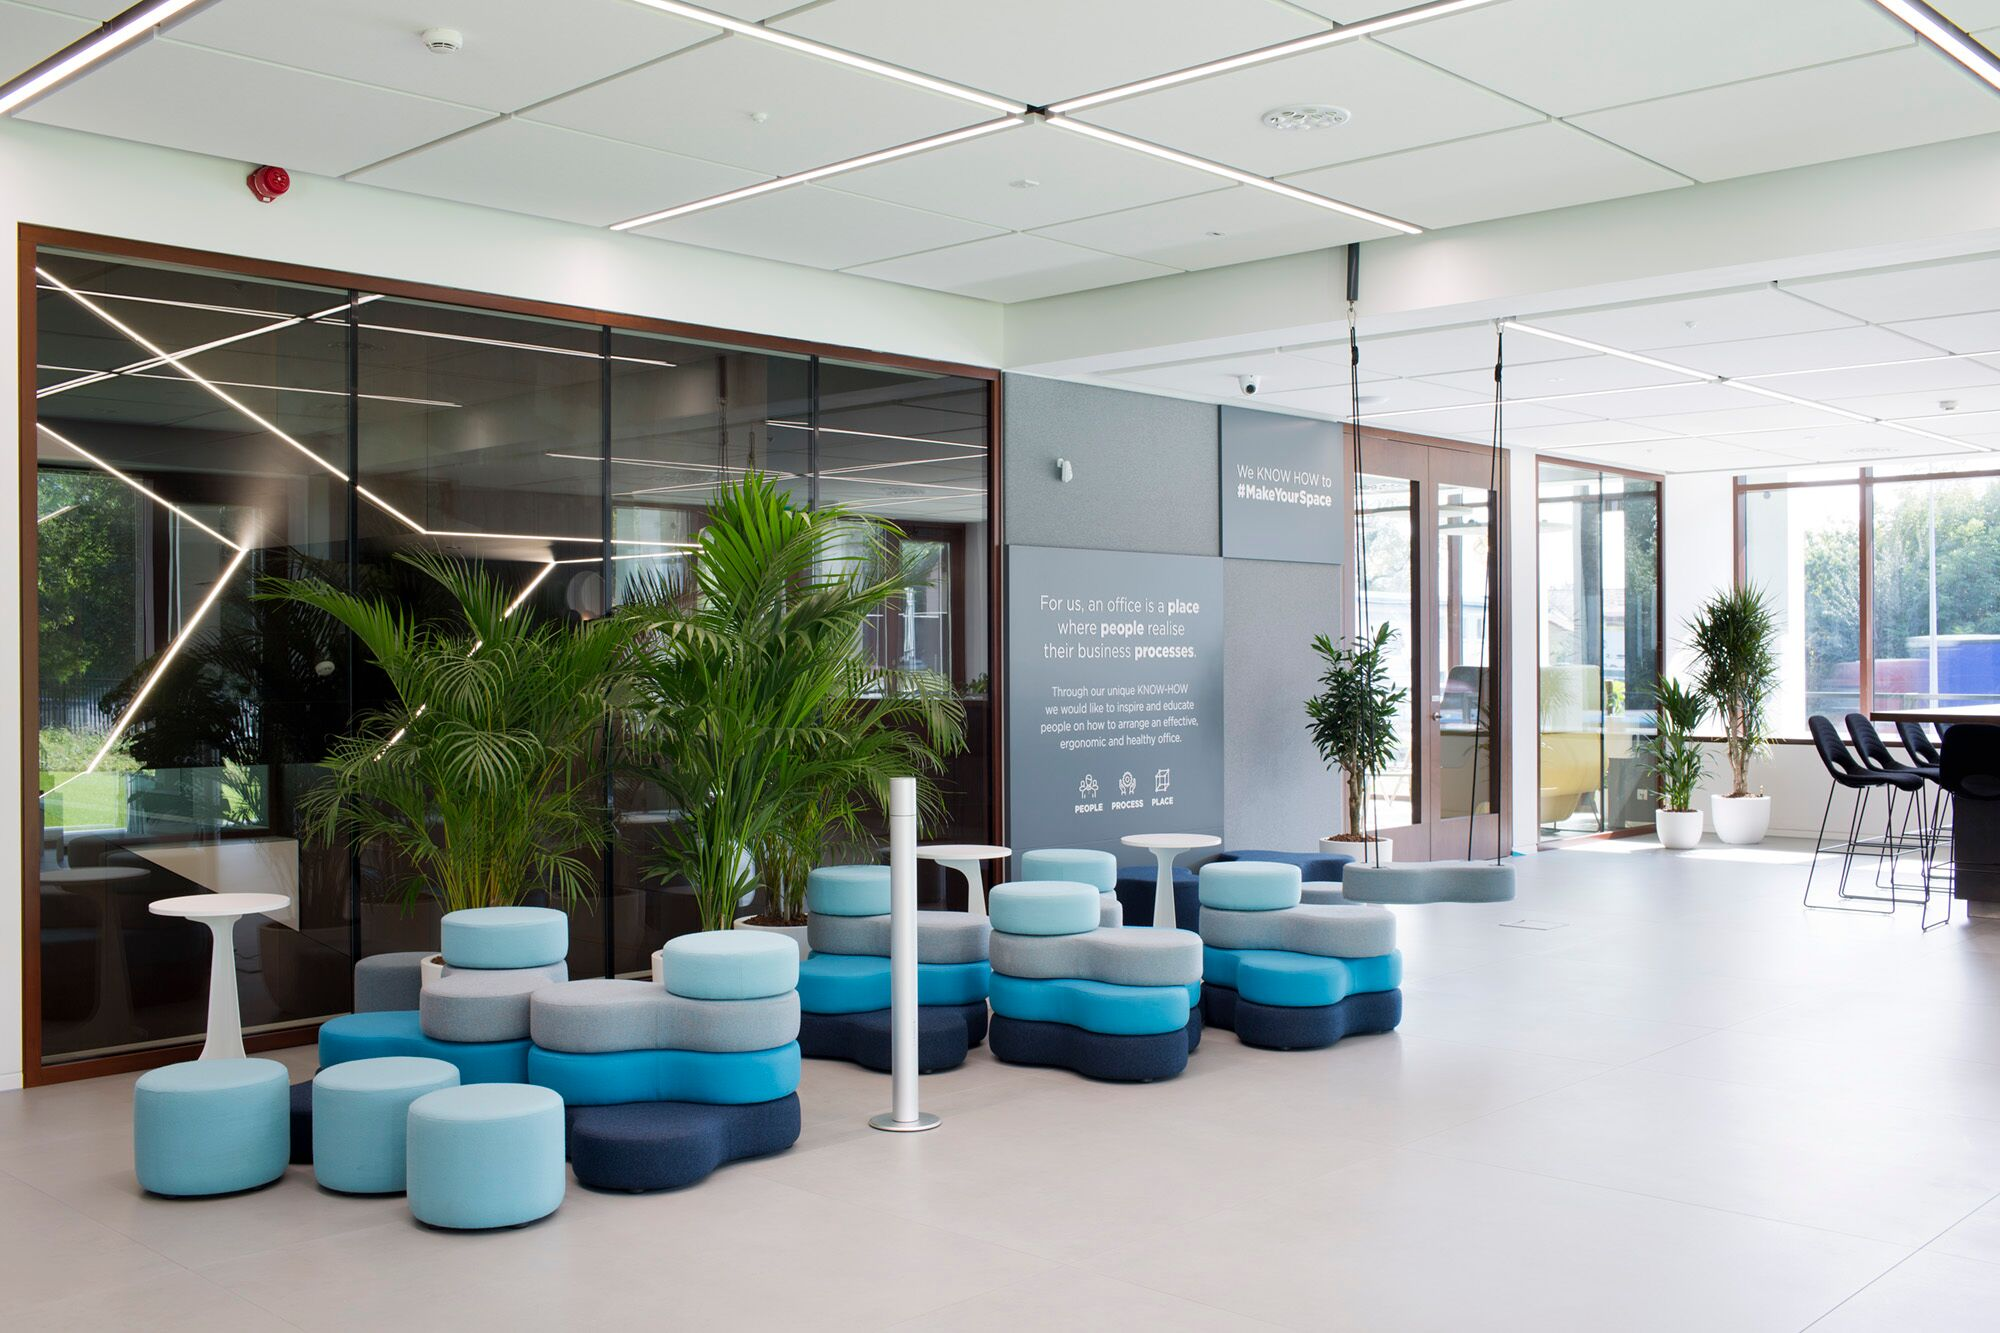 ... Carefully Selected For The Office Inspiration Centre, Are Put In Pots  And Arranged In The Form Of Vertical Gardens With An Automatic Irrigation  System.